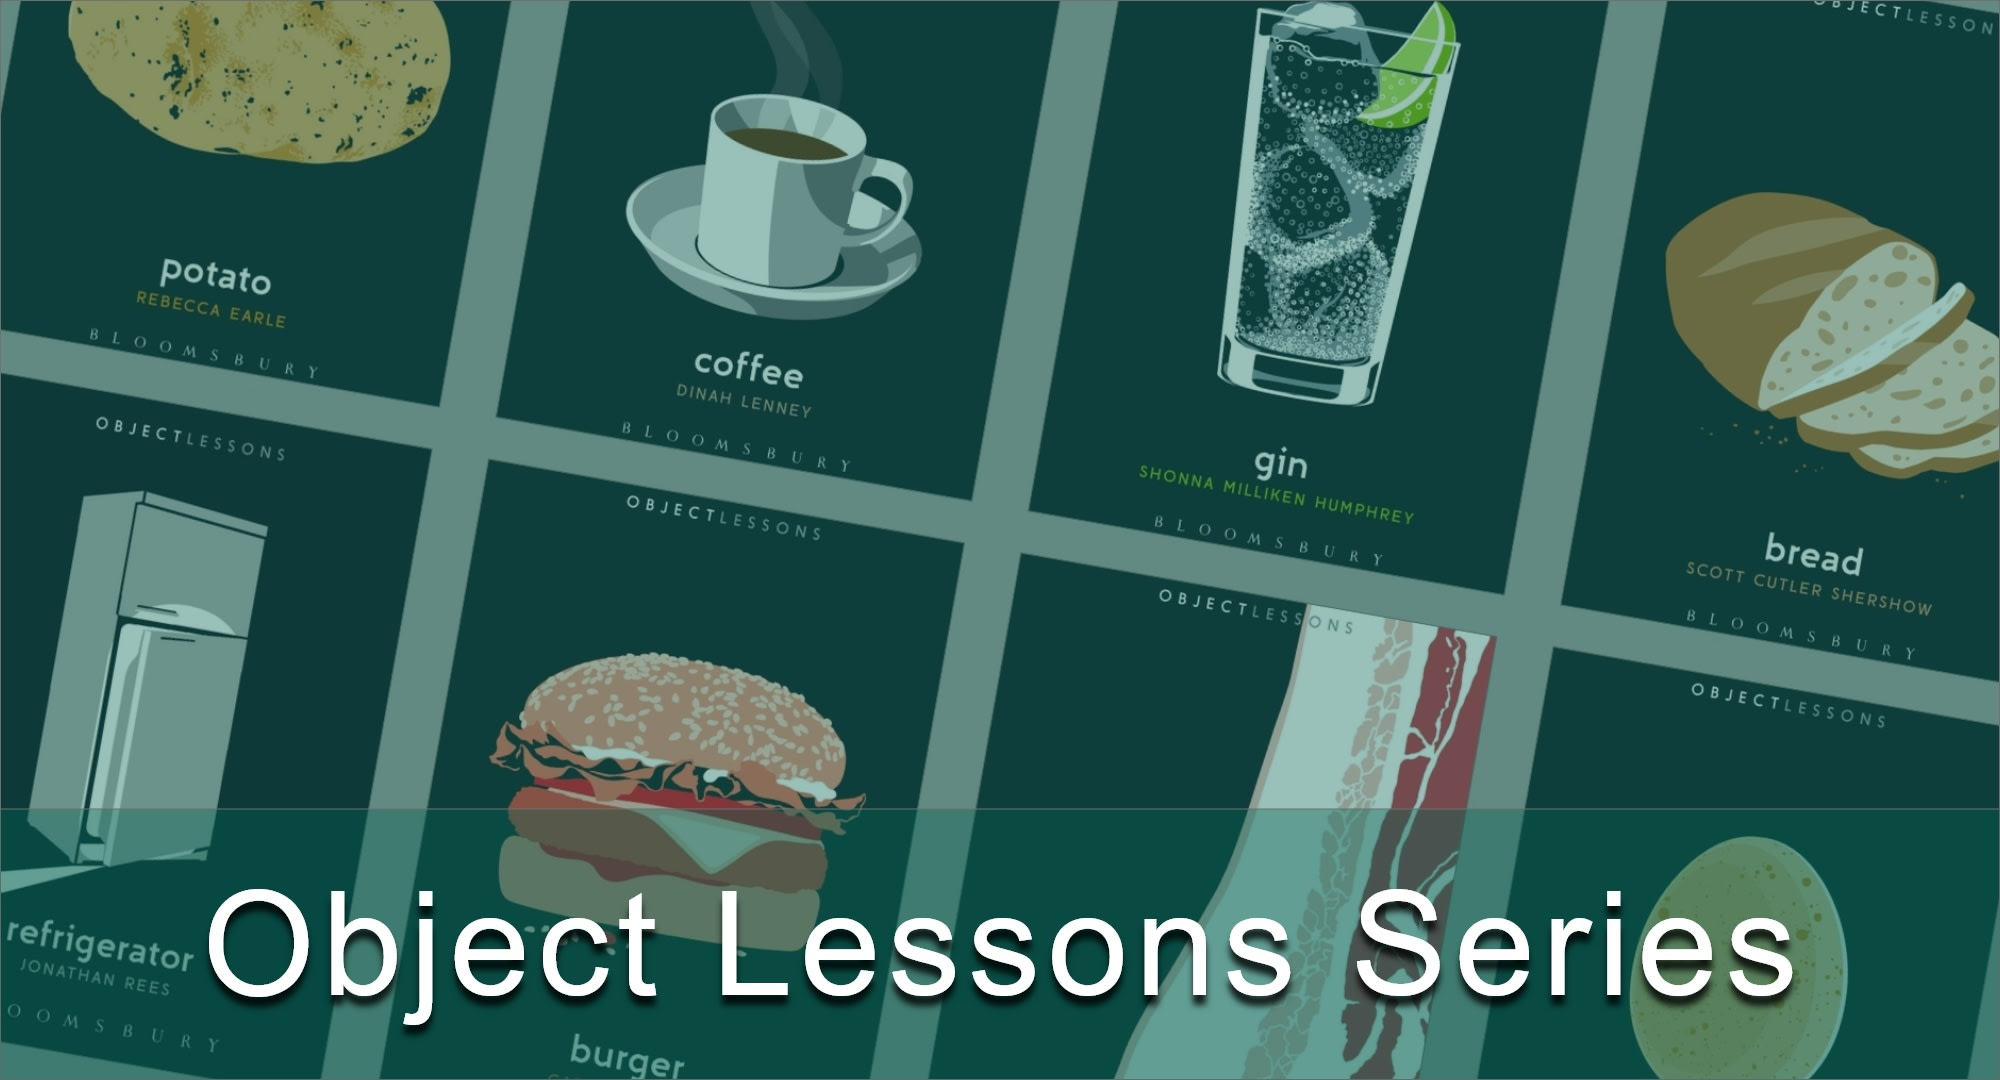 Click here to view the Object Lessons series